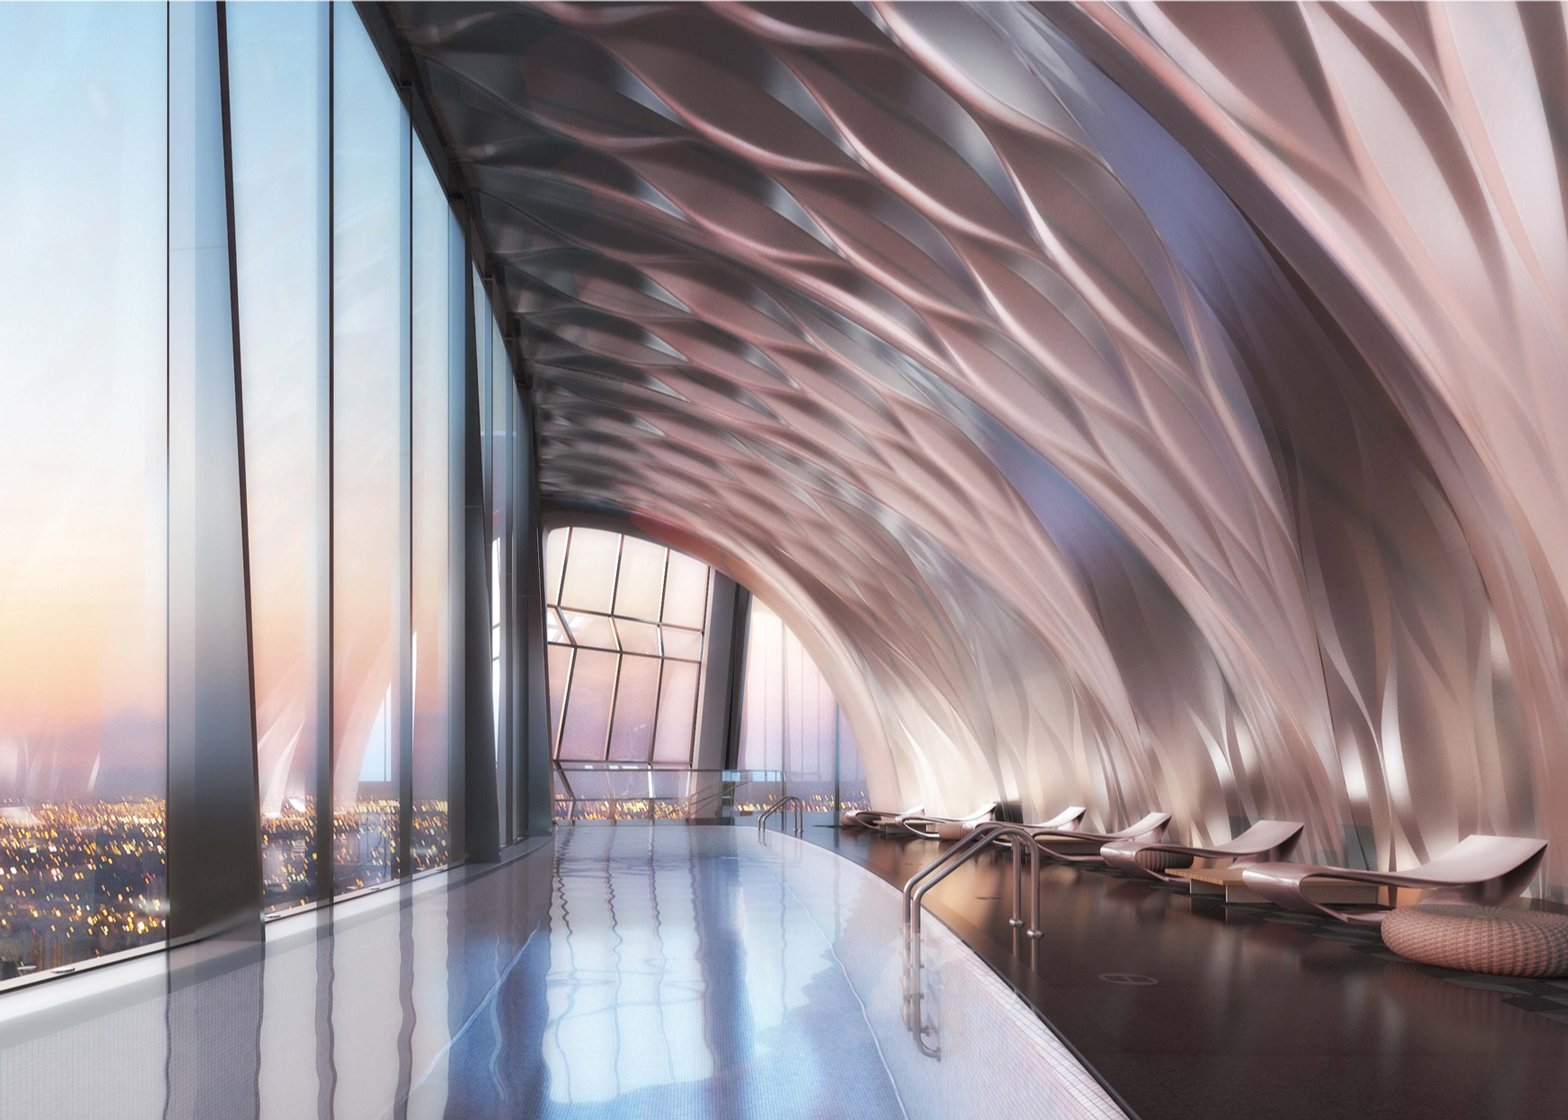 Zaha Hadid's One Thousand Museum residential tower in Miami